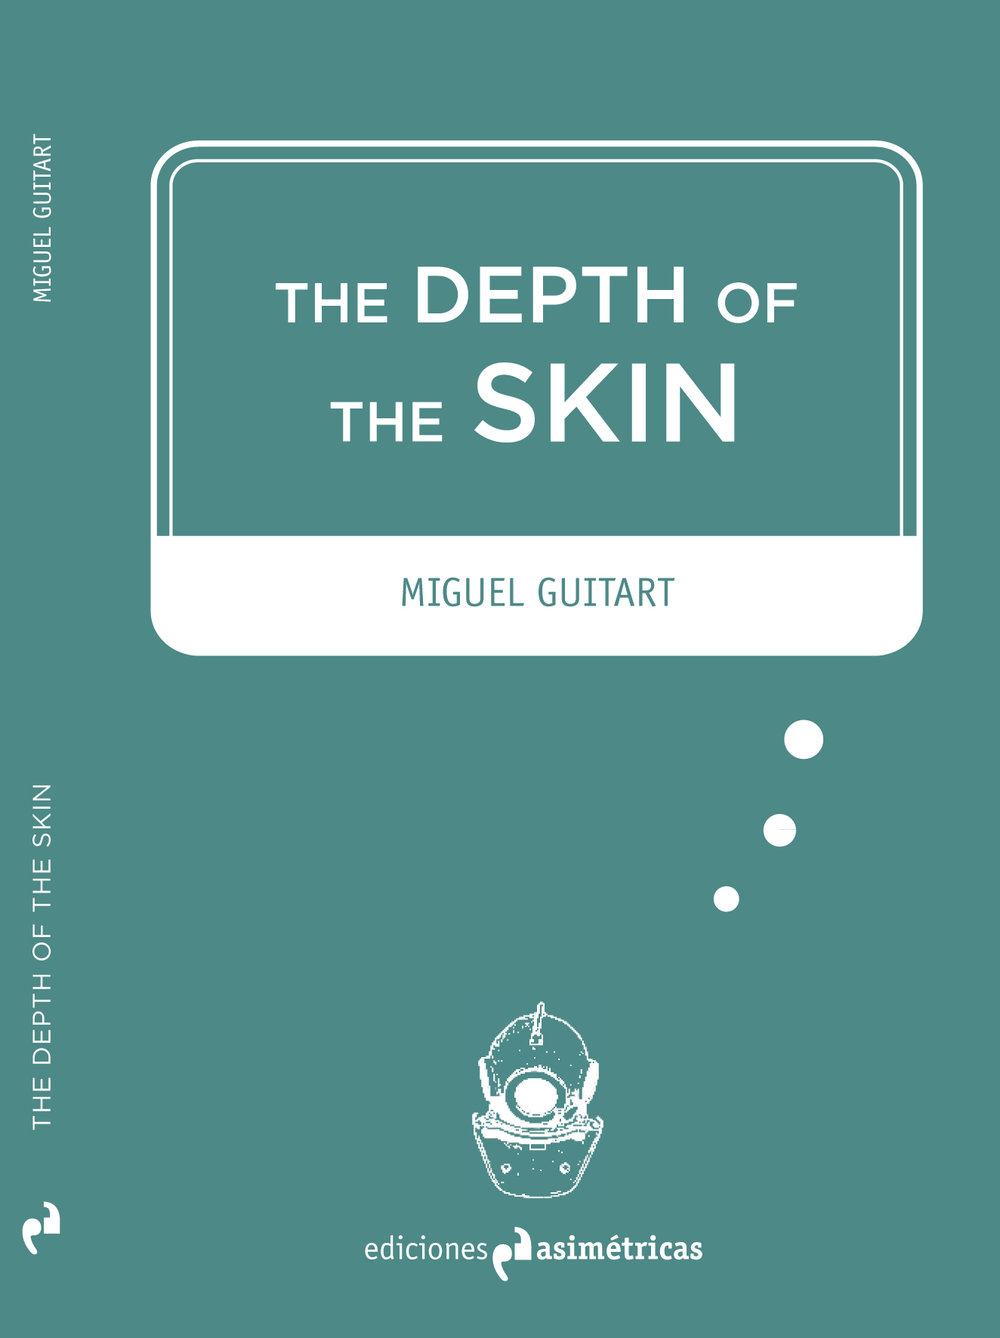 Miguel Guitart_The Depth of the Skin.jpg